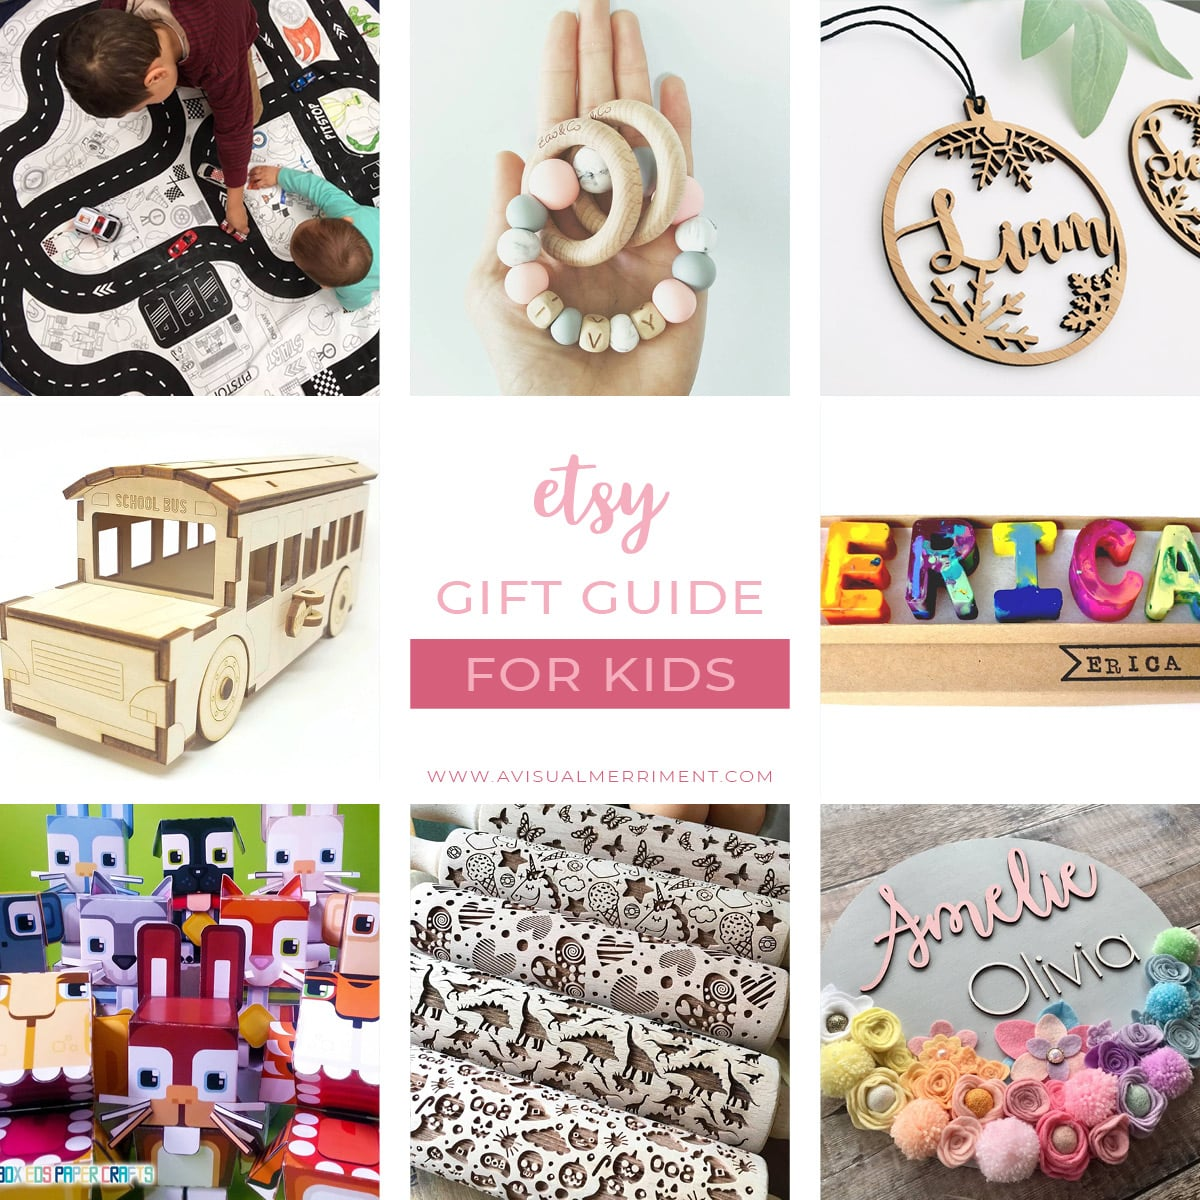 Etsy gift guide for kids